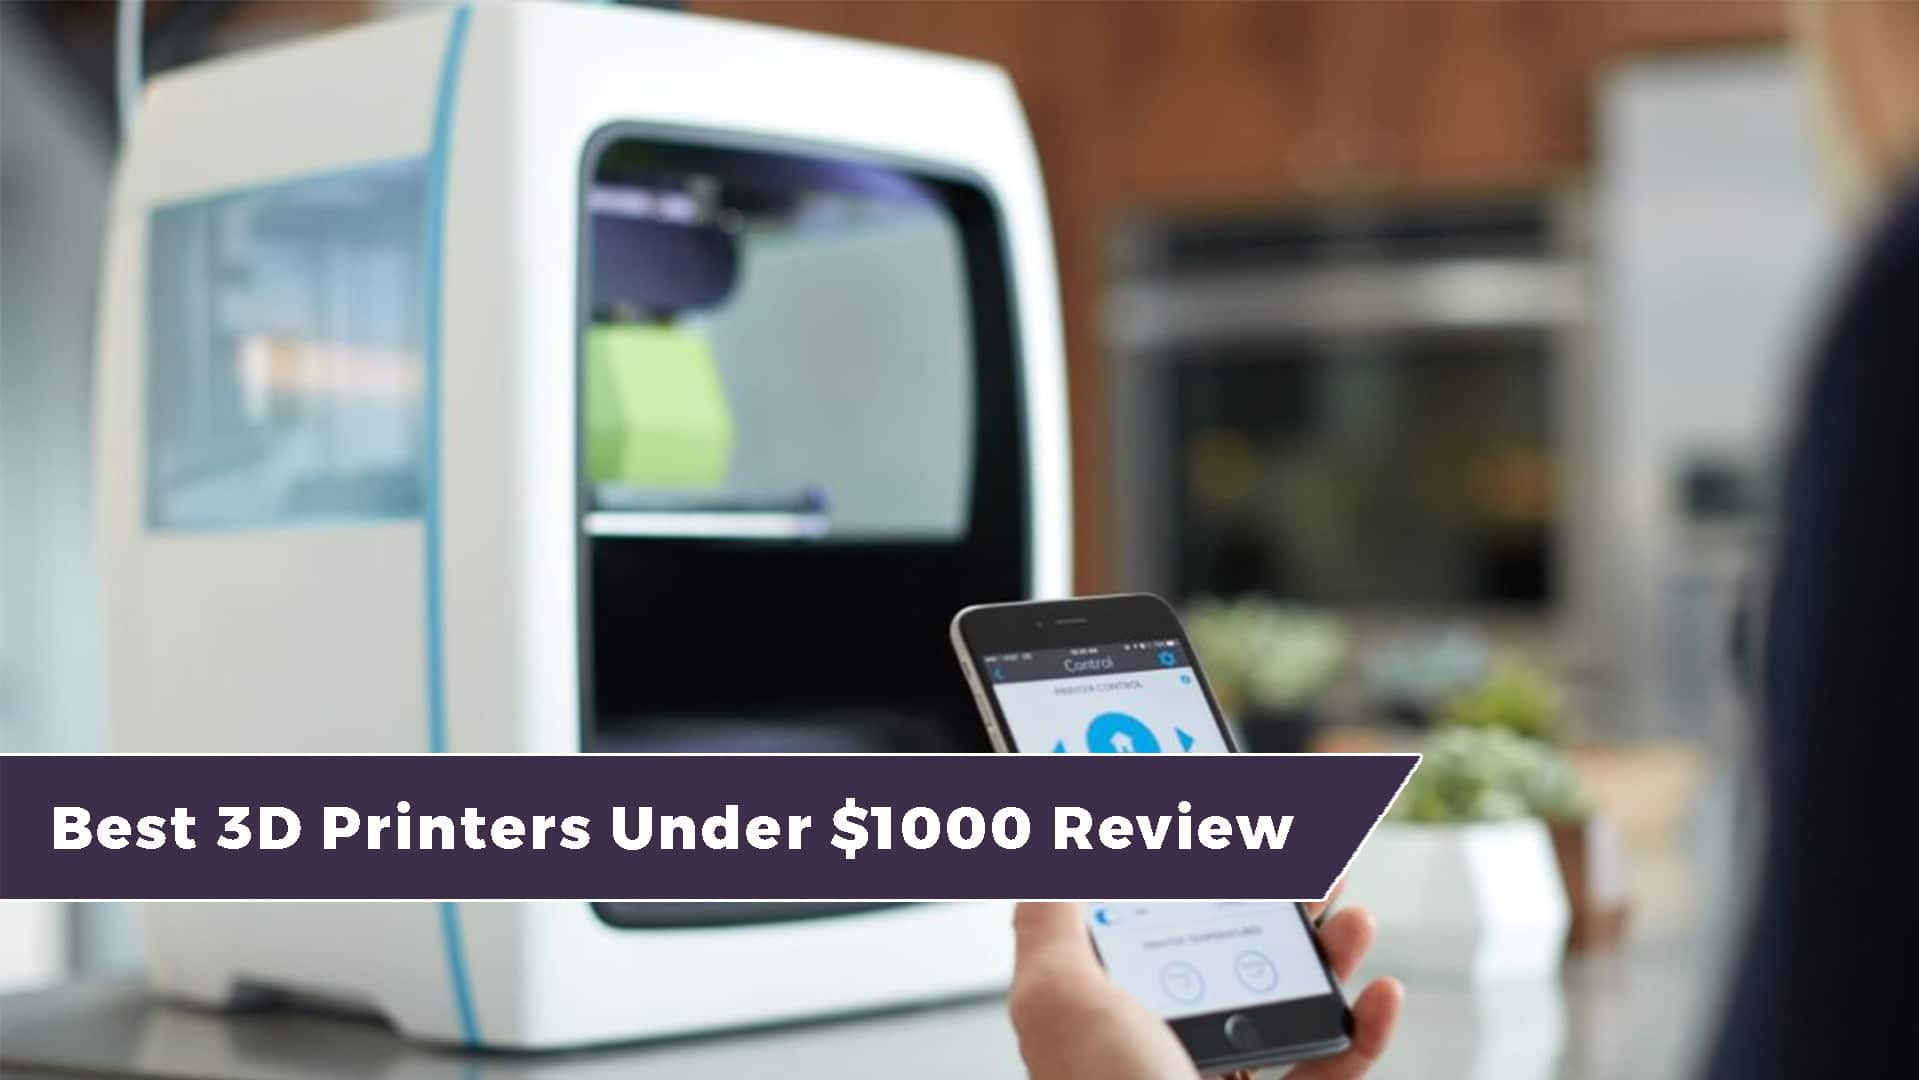 The Best 3D printers Under $1000 (Including DIY Kits)